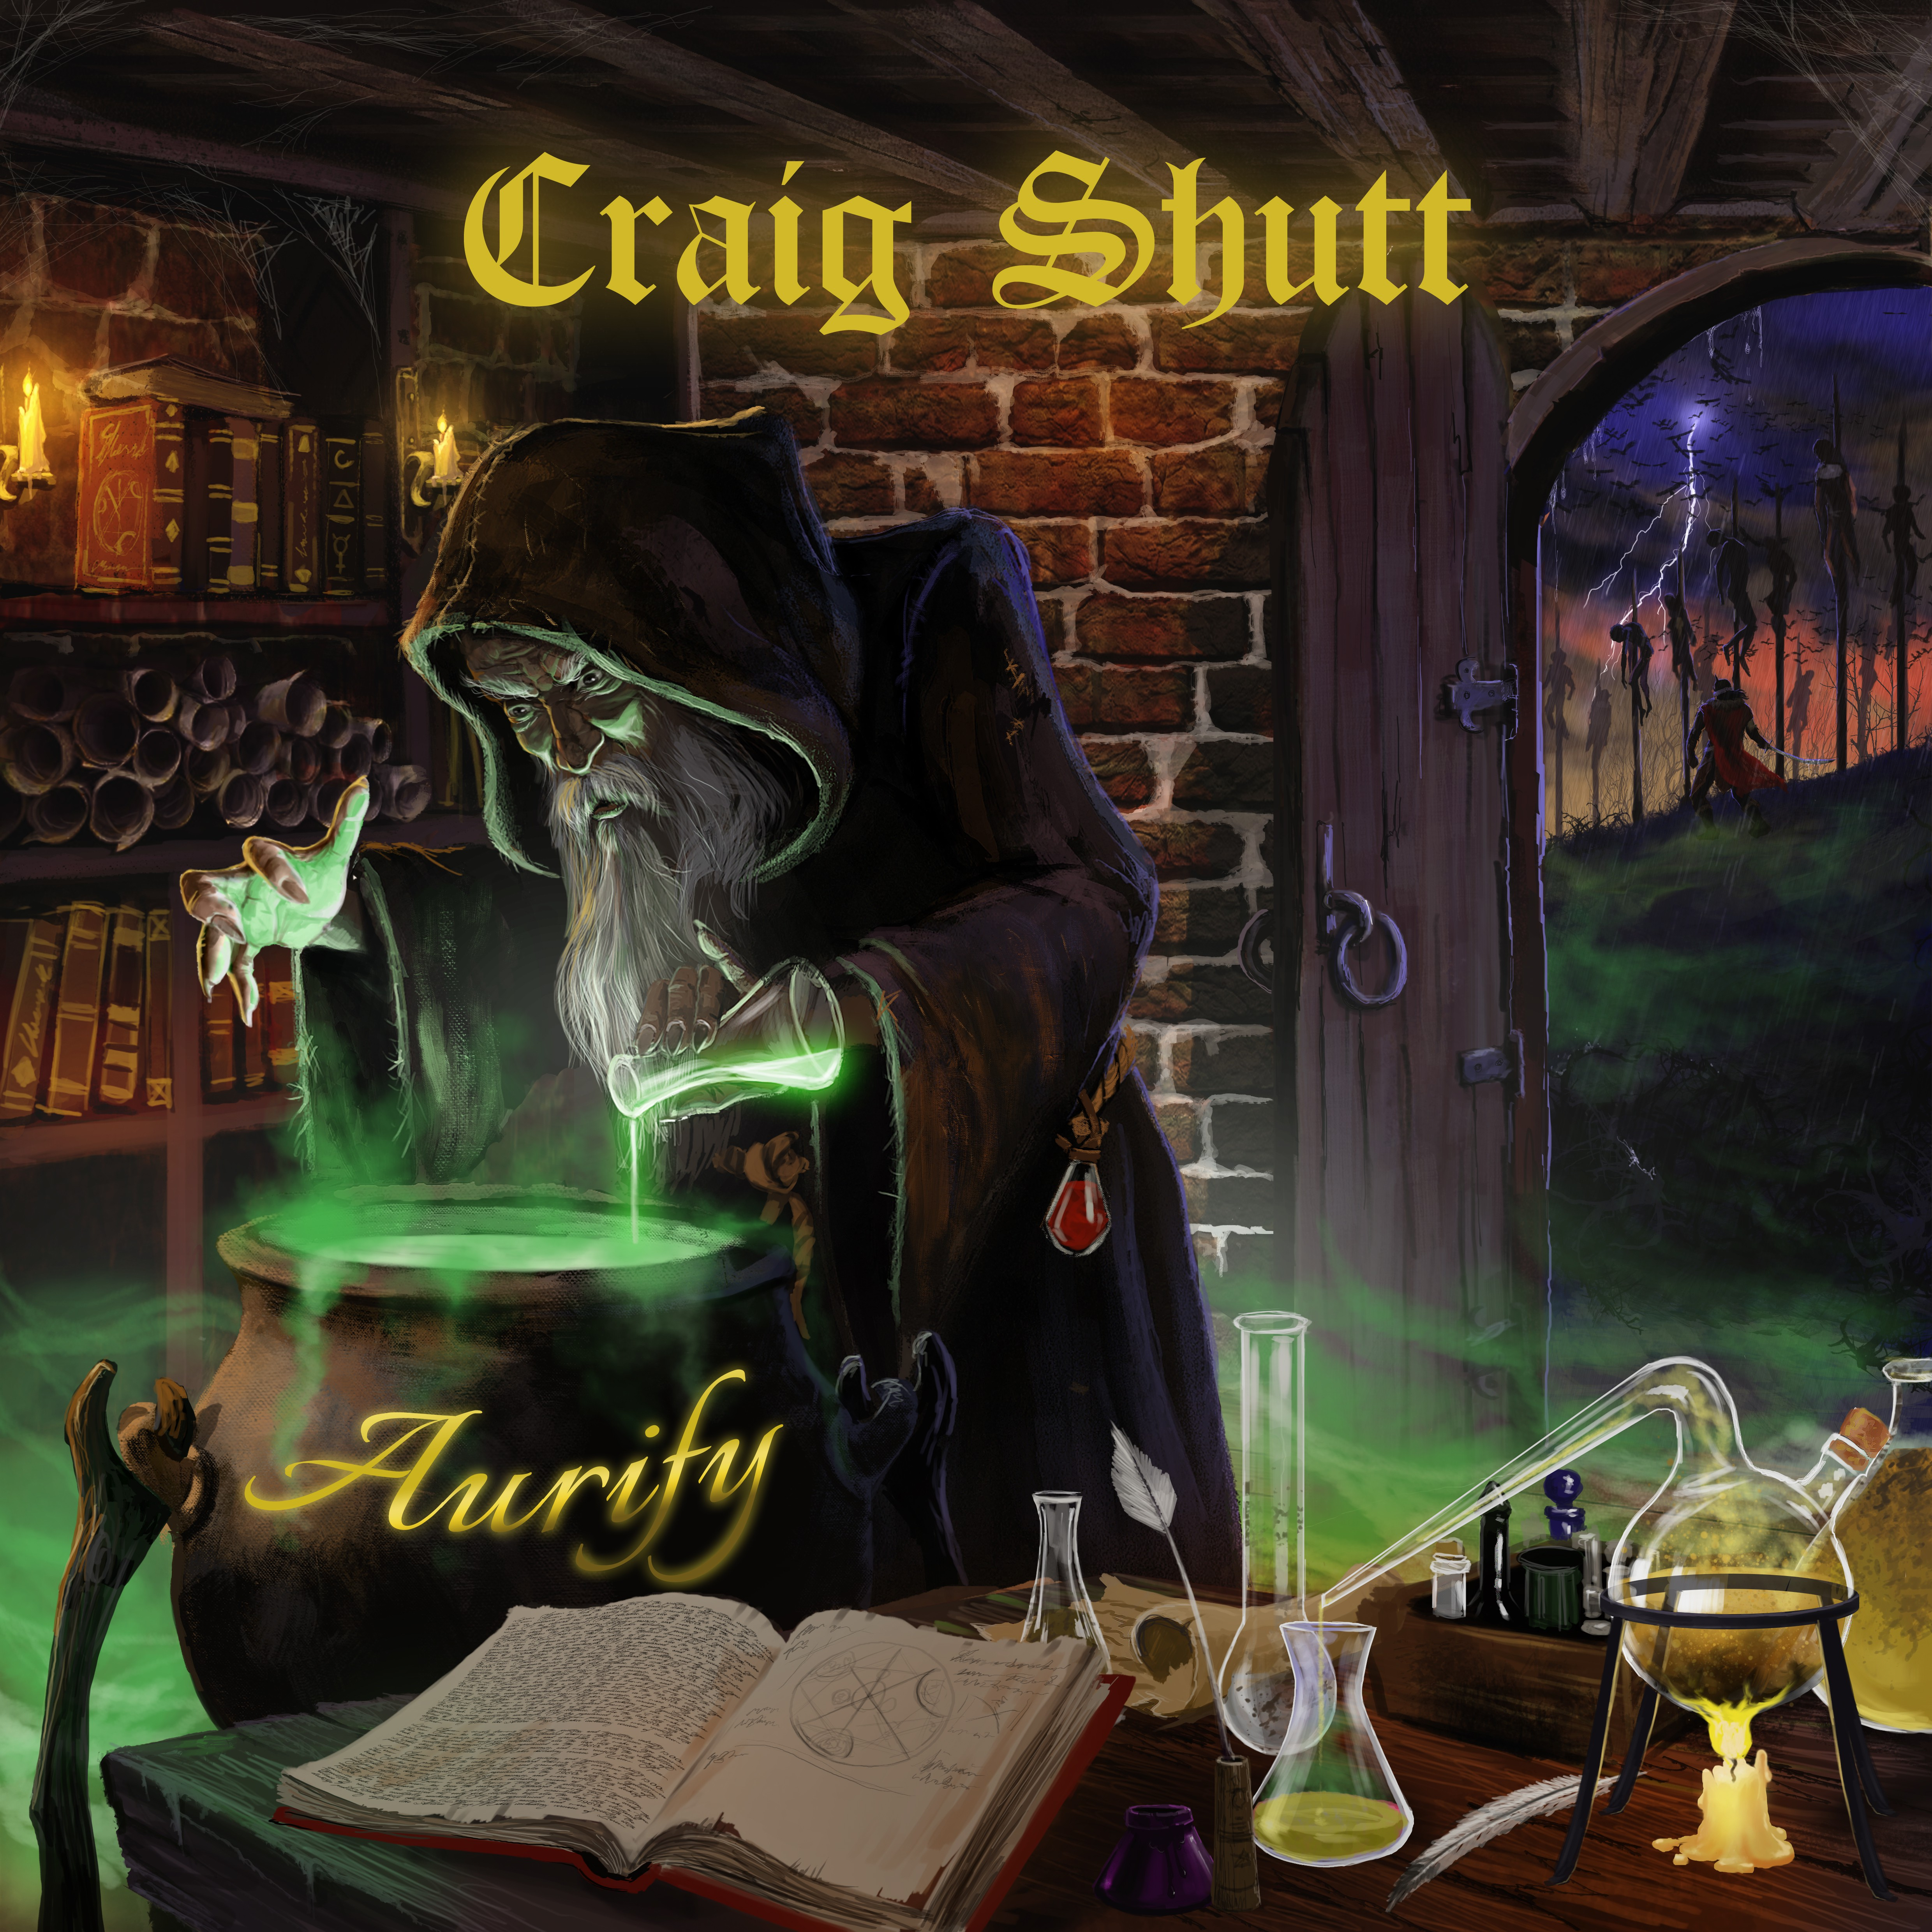 """Create a medieval-style cover for my album """"Aurify"""""""